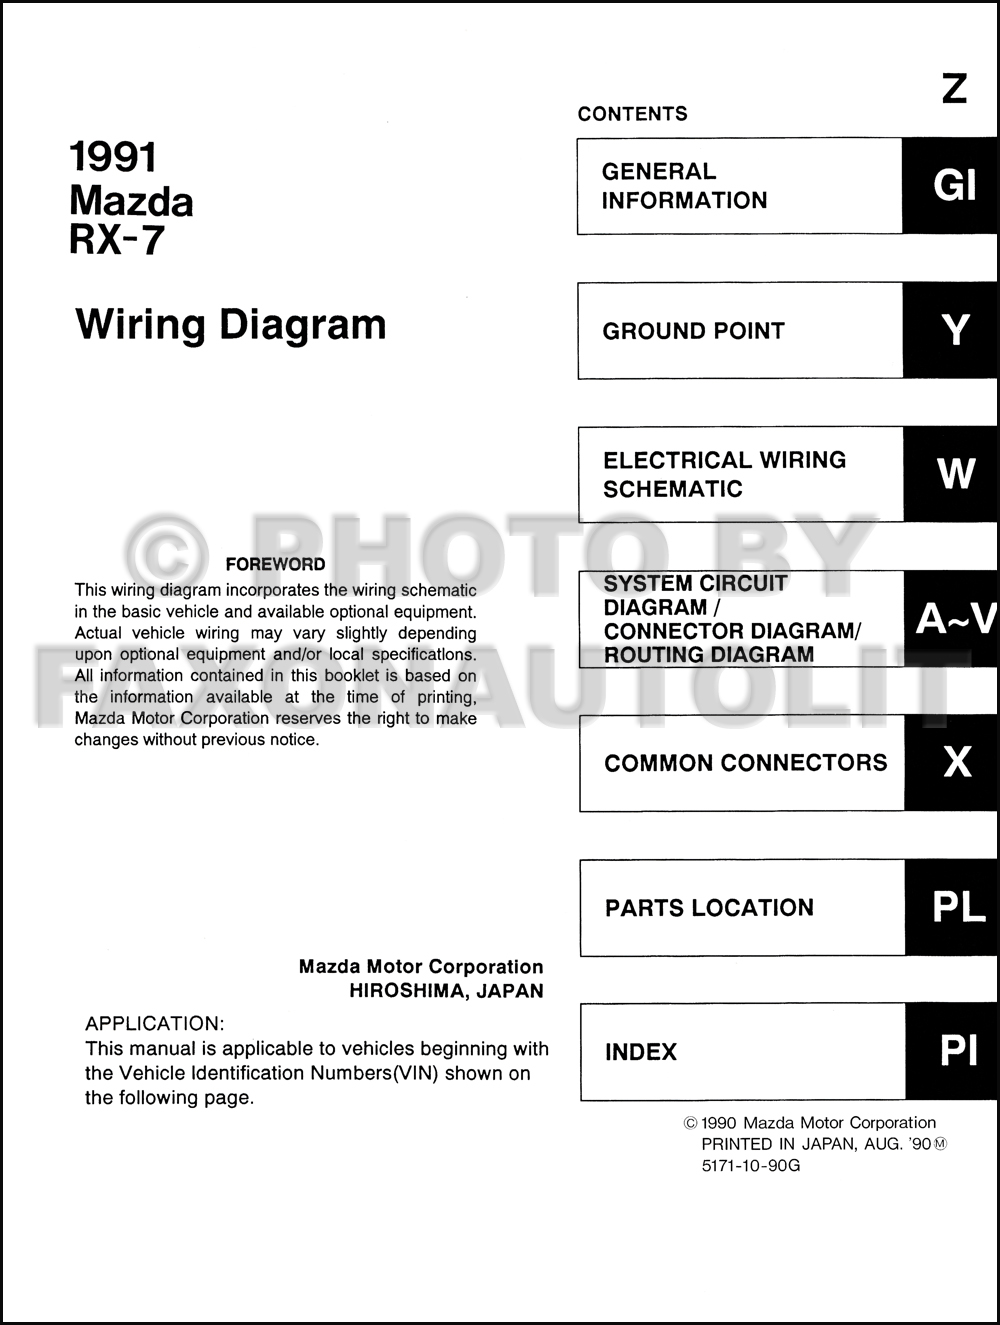 1991 mazda rx7 wiring diagram wiring diagrams 1991 mazda rx 7 wiring diagram manual original rx7